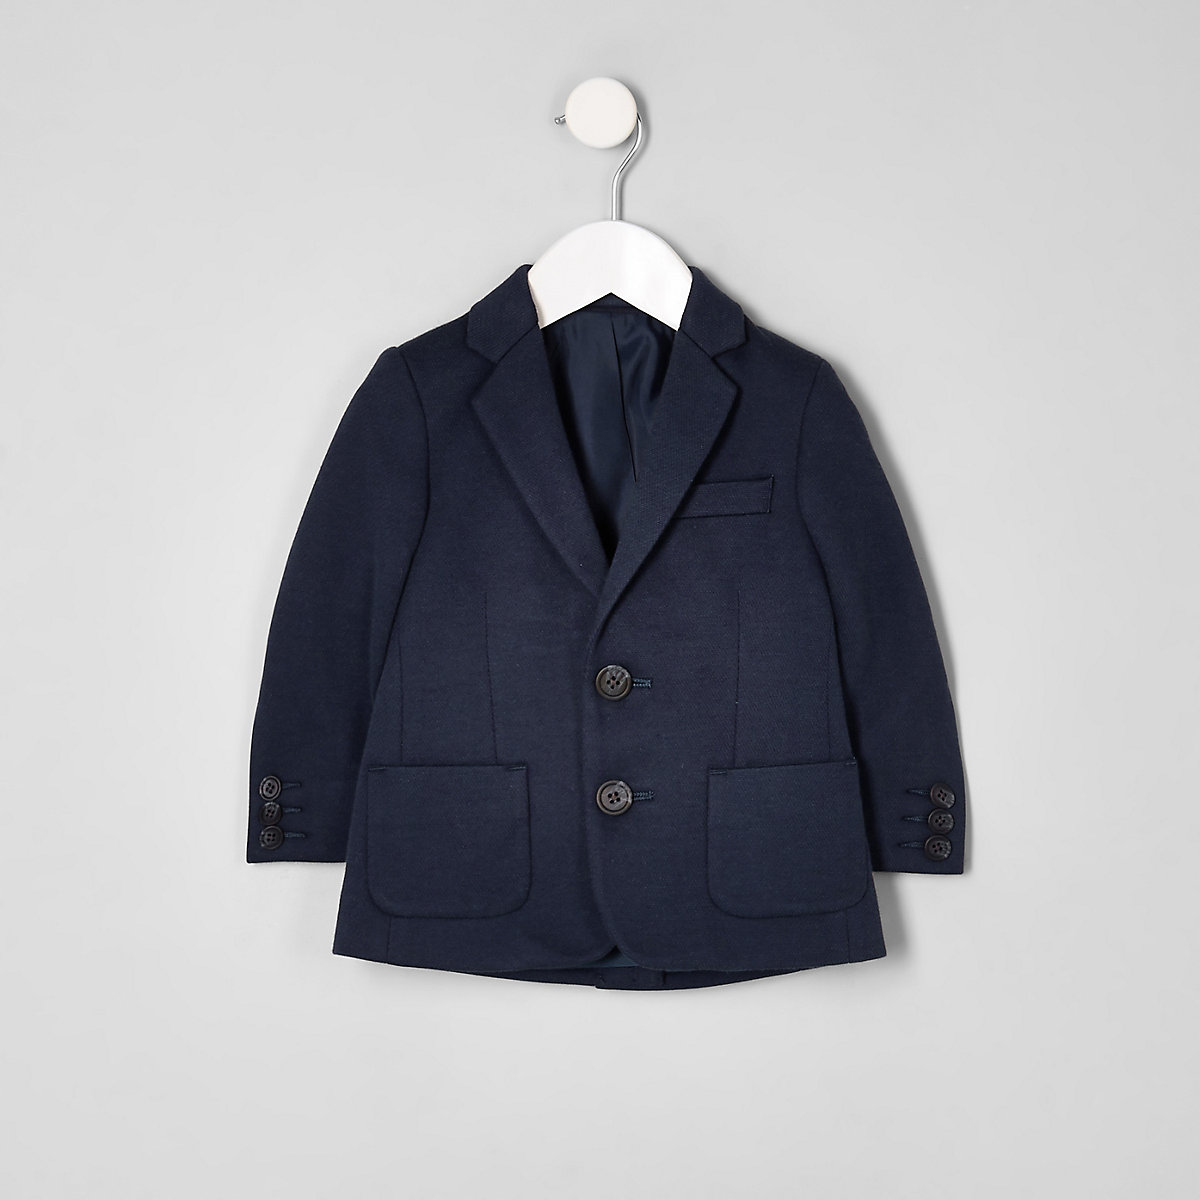 Mini boys navy jersey blazer